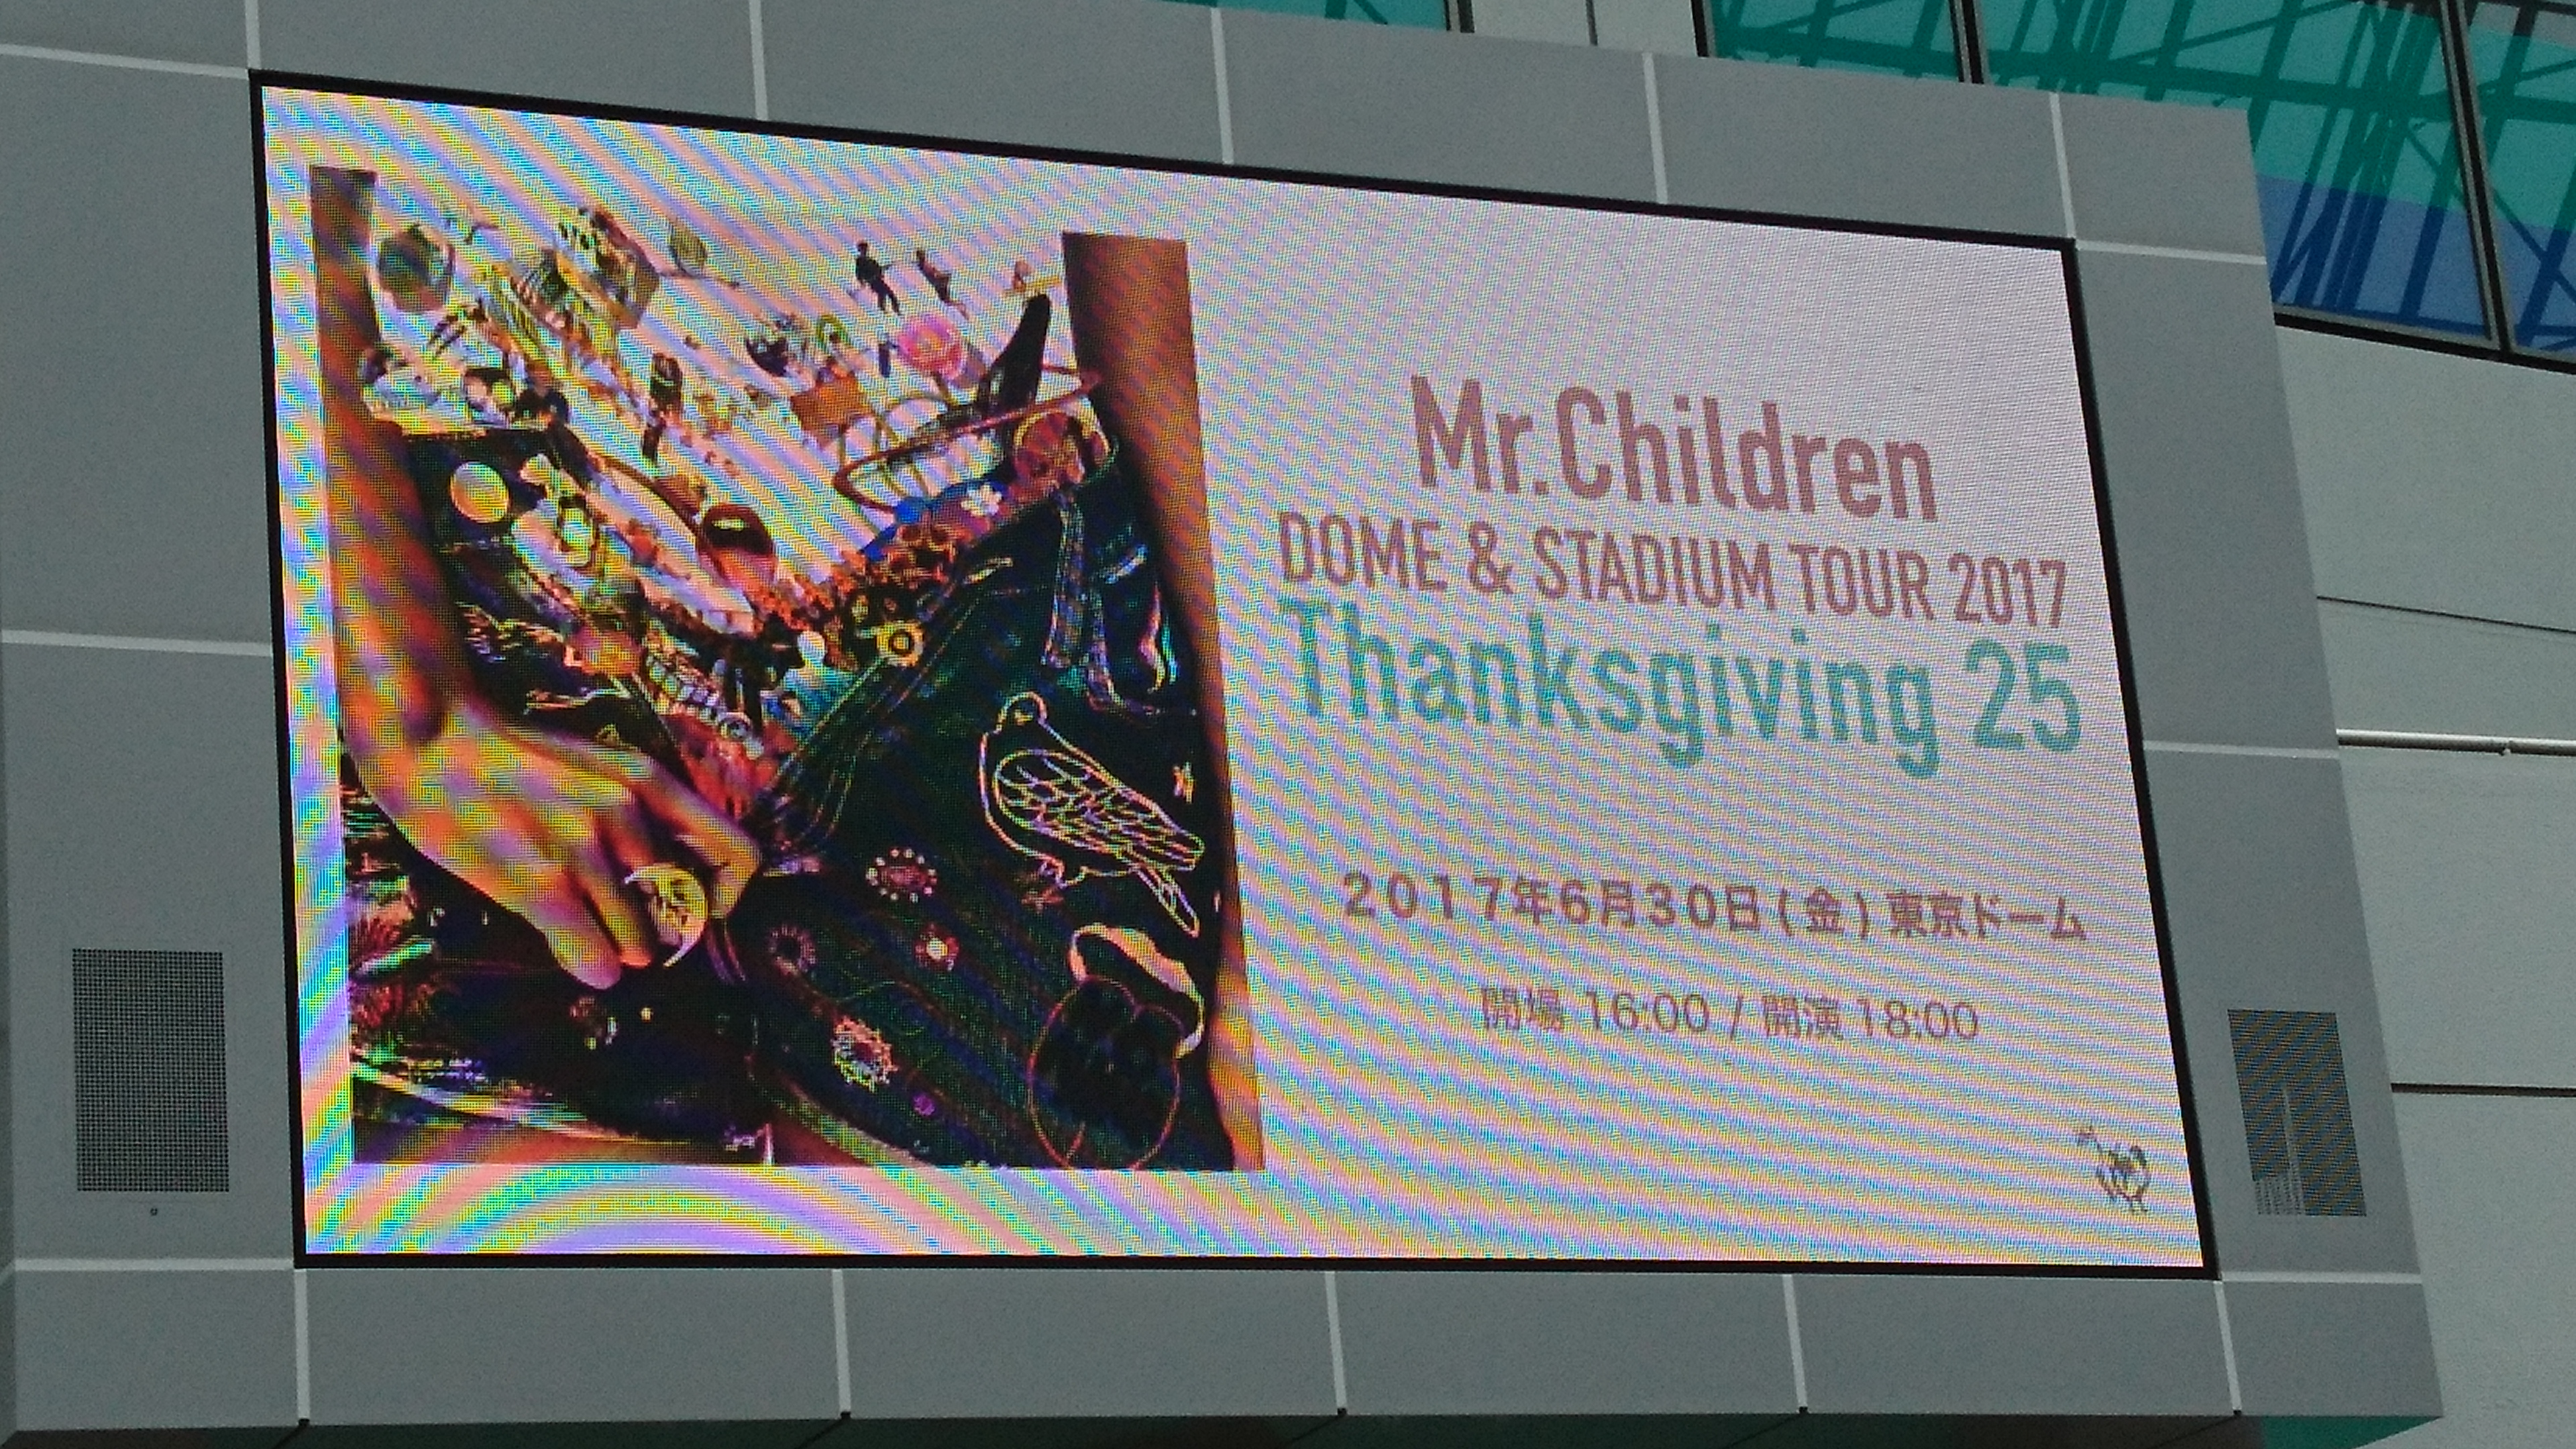 Mr.Children DOME & STADIUM TOUR 2017 Thanksgiving 25 in 東京ドーム。